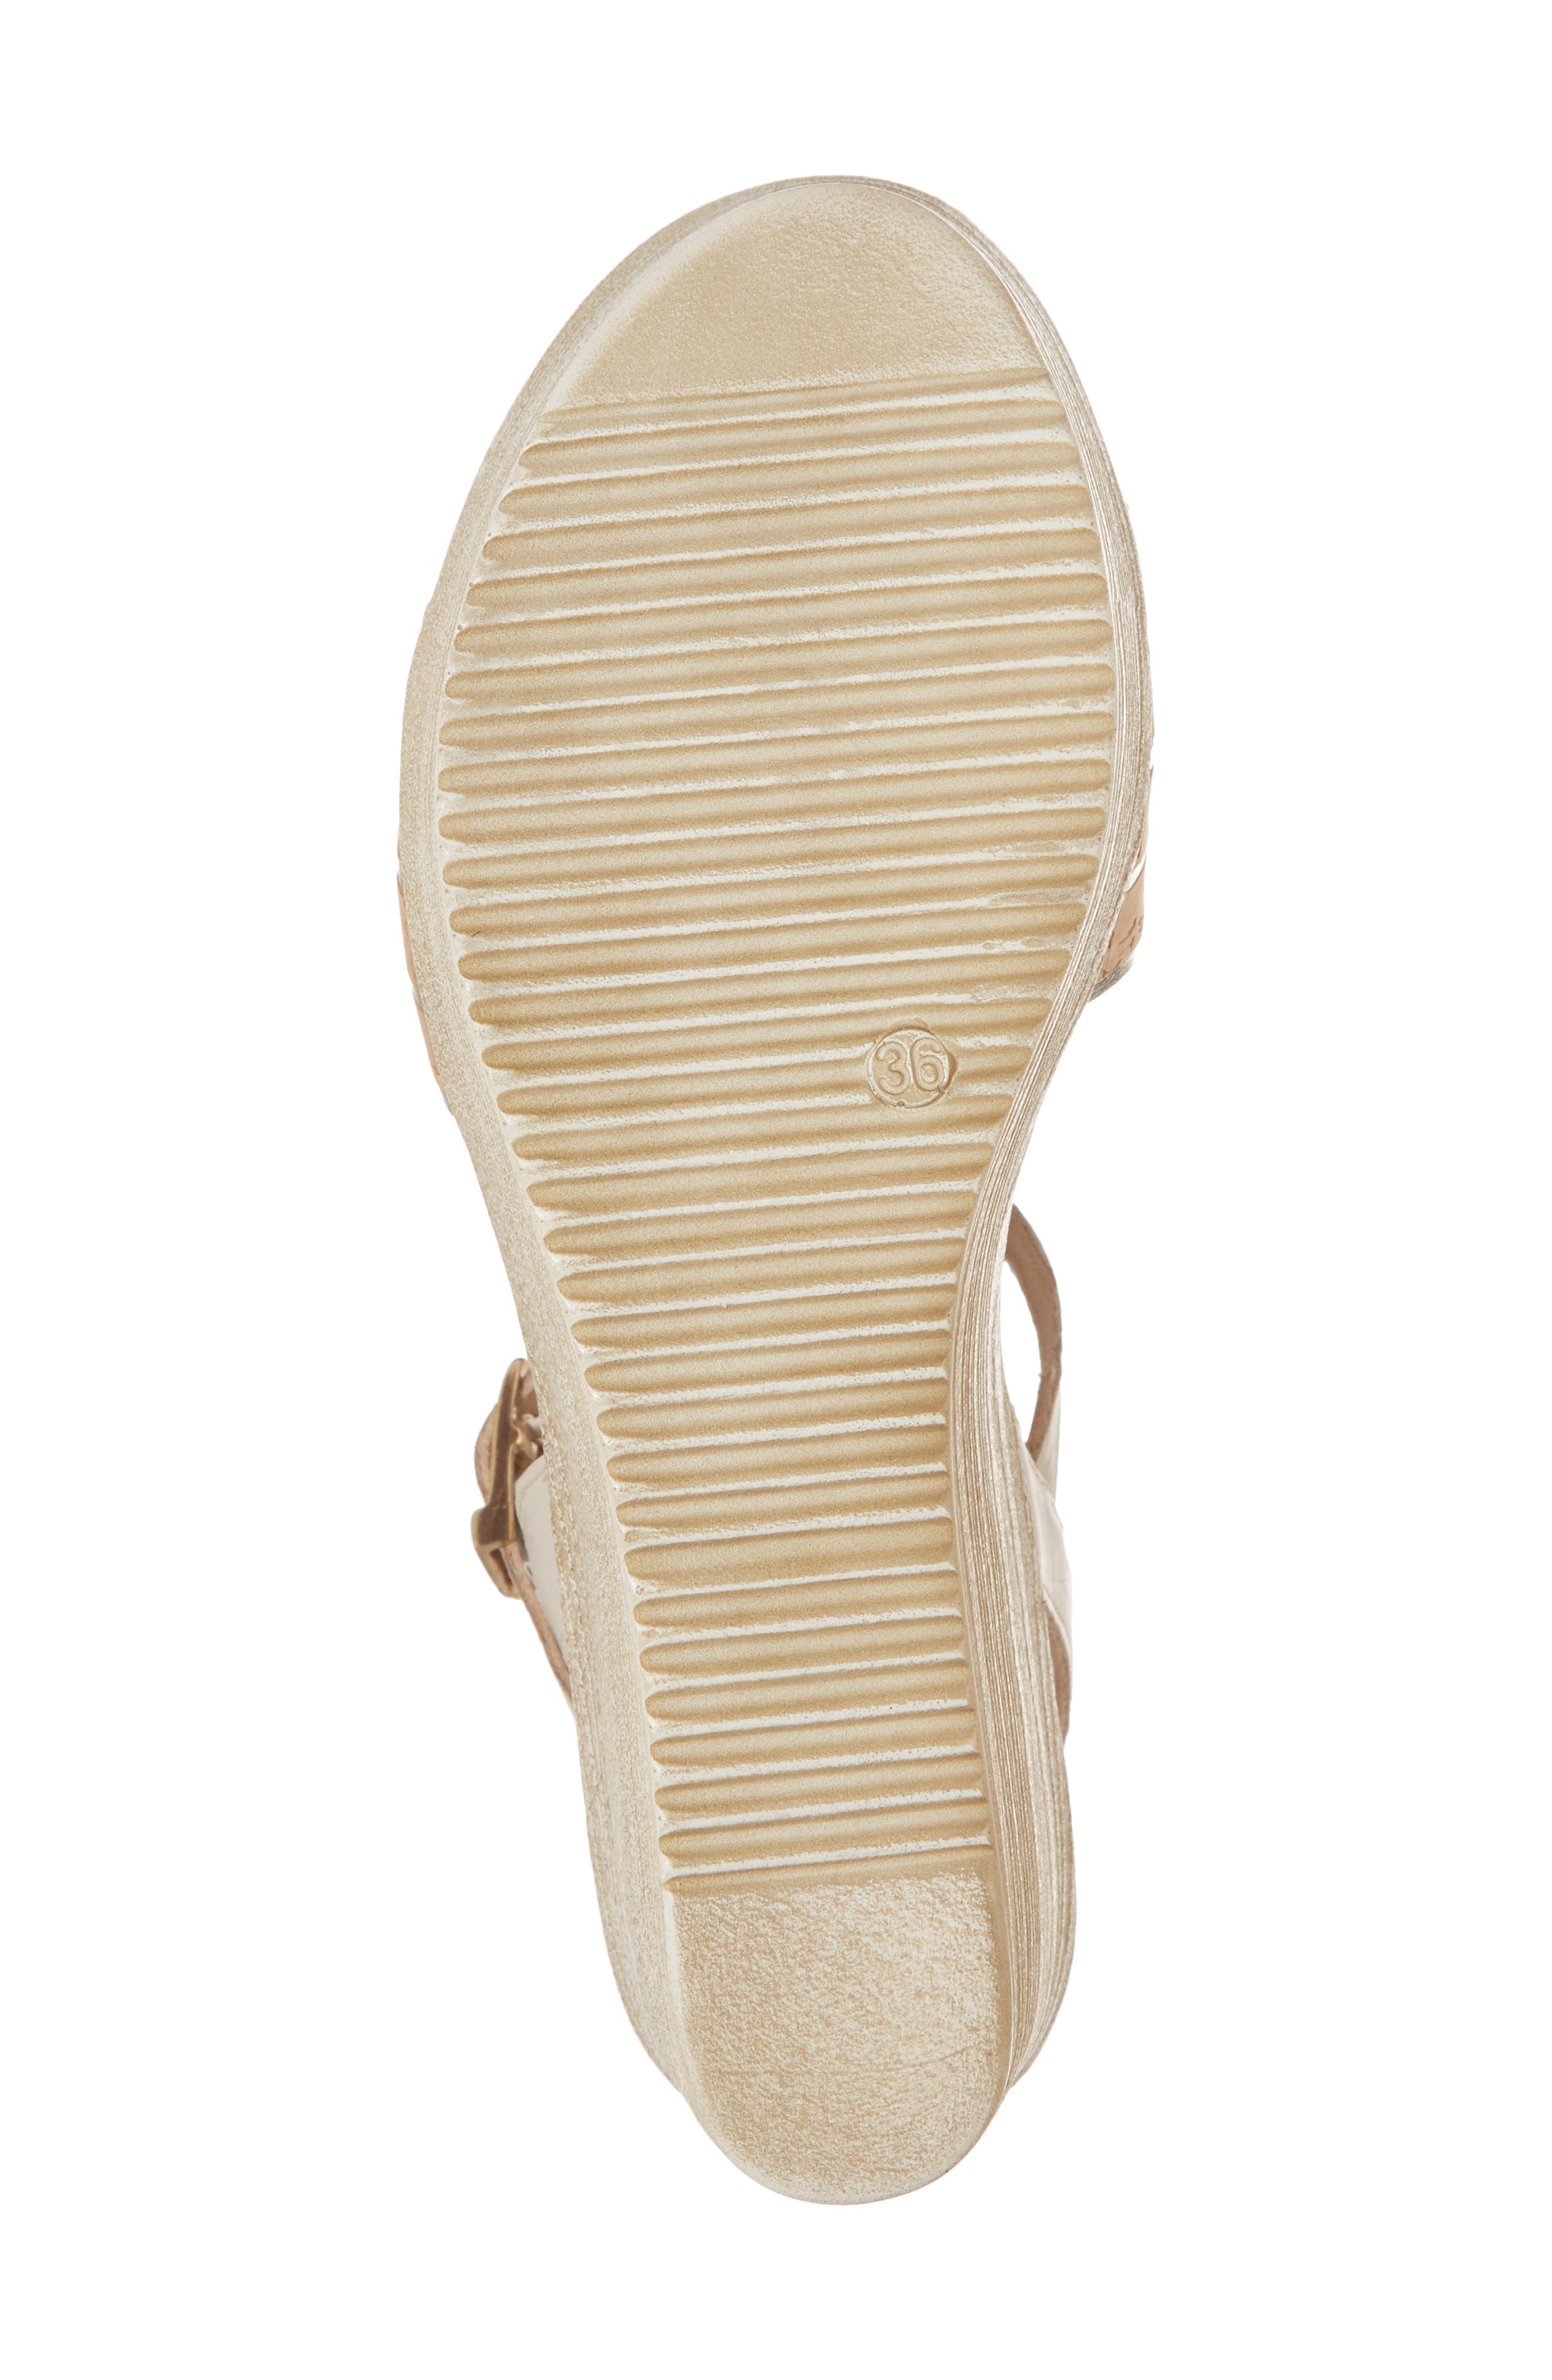 Jaida Platform Wedge Sandal,                             Alternate thumbnail 6, color,                             Cork/ Gold